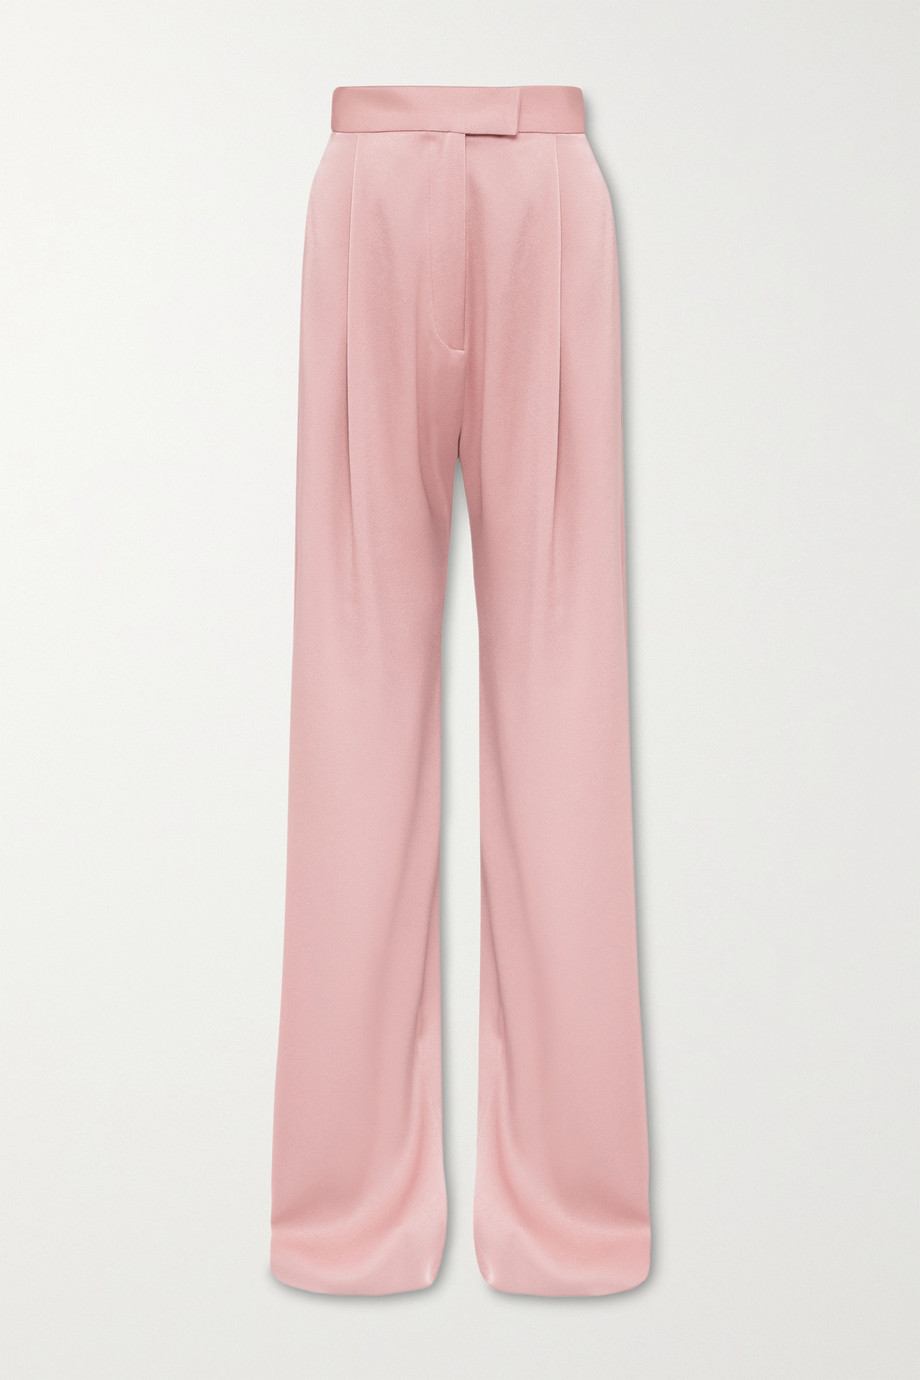 Alex Perry Hartley pleated satin-crepe wide-leg pants